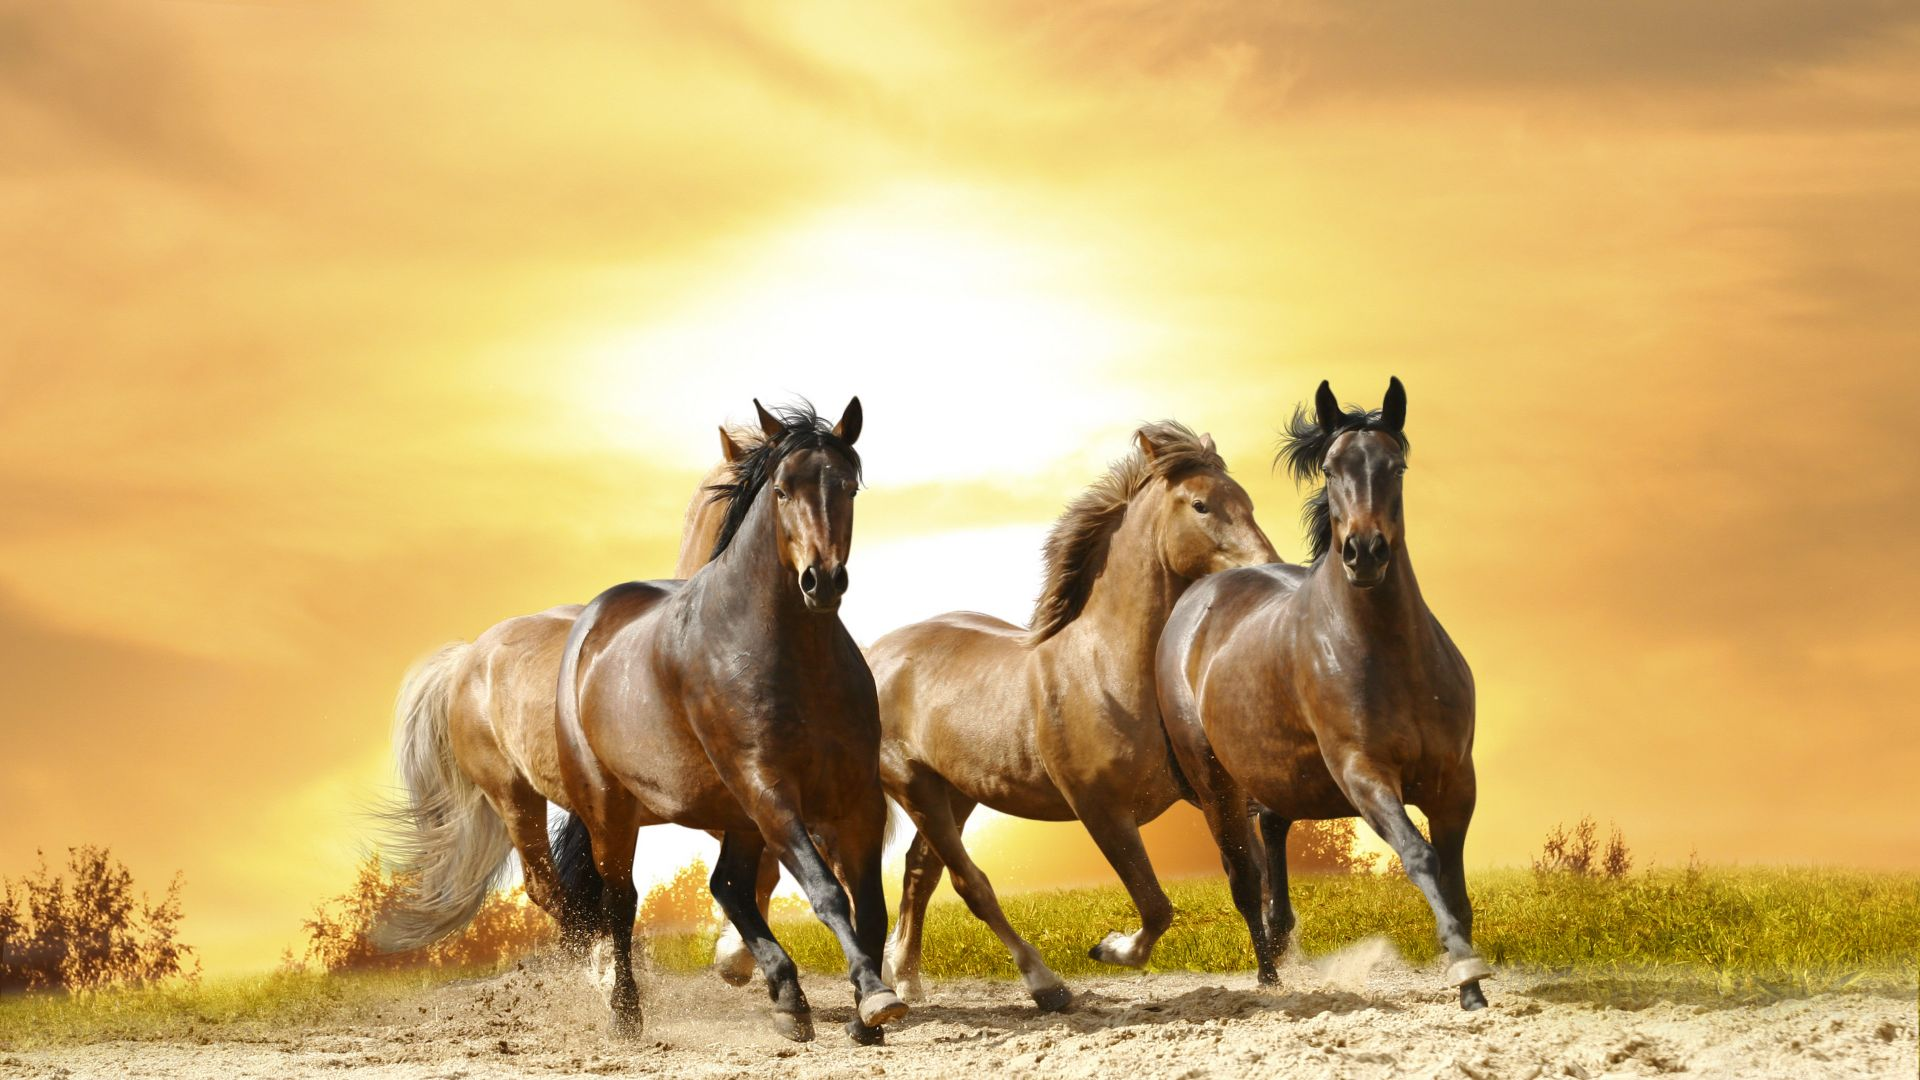 horses, cute animals, 8k (horizontal)